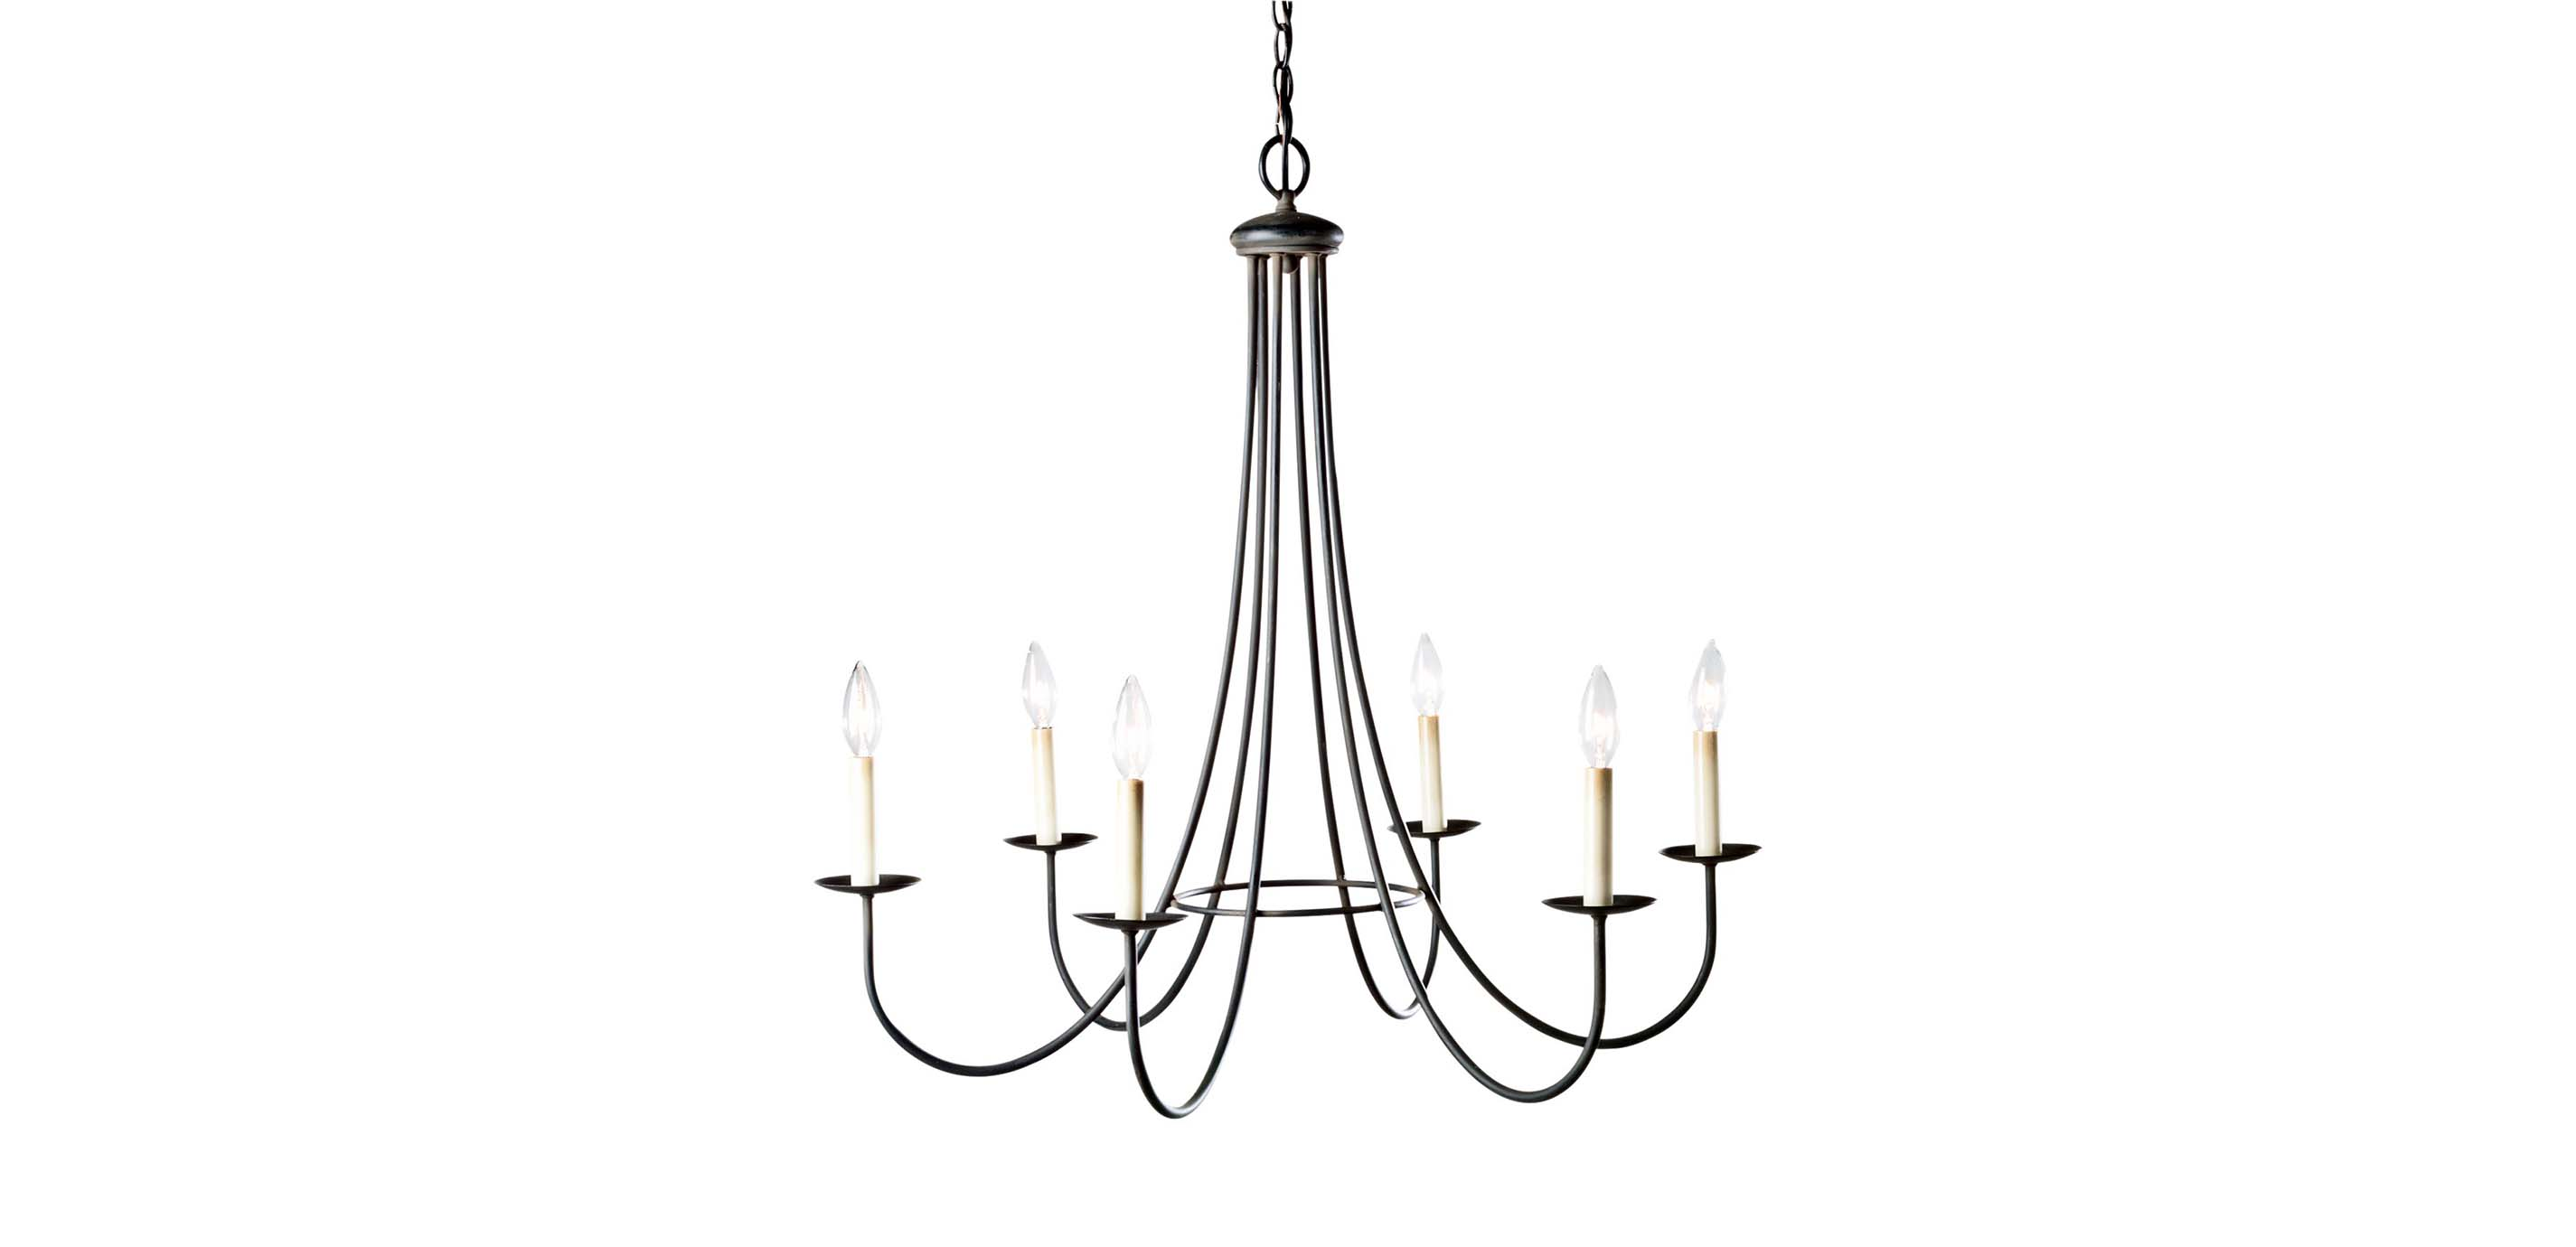 Six light iron chandelier chandeliers images six light iron chandelier largegray aloadofball Images